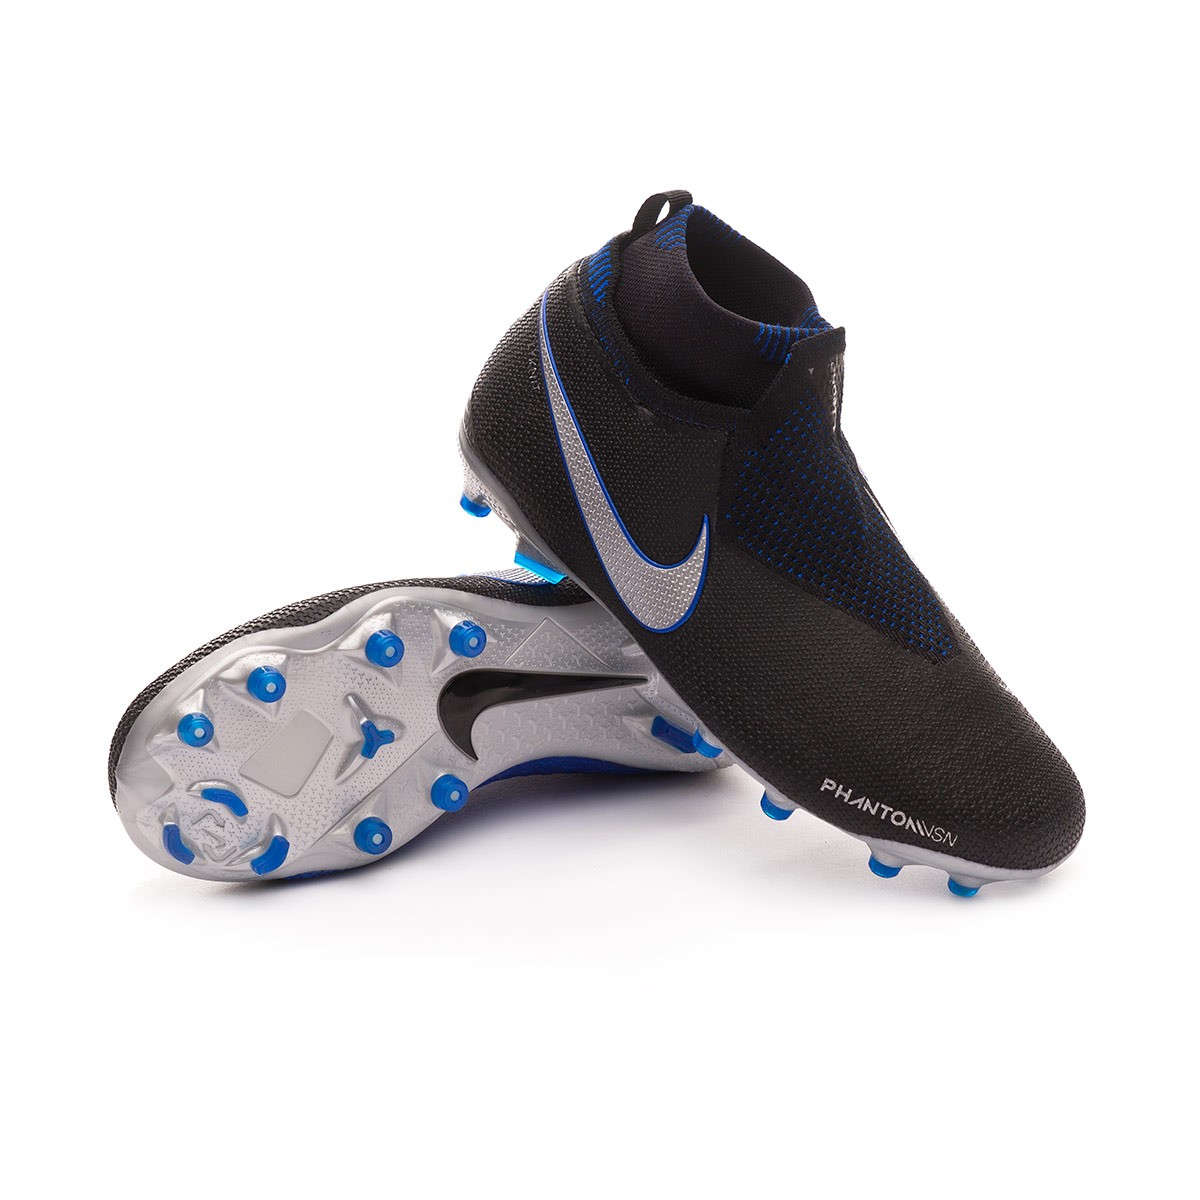 3e5c5e592 Football Boots Nike Kids Phantom Vision Elite DF FG MG Black ...